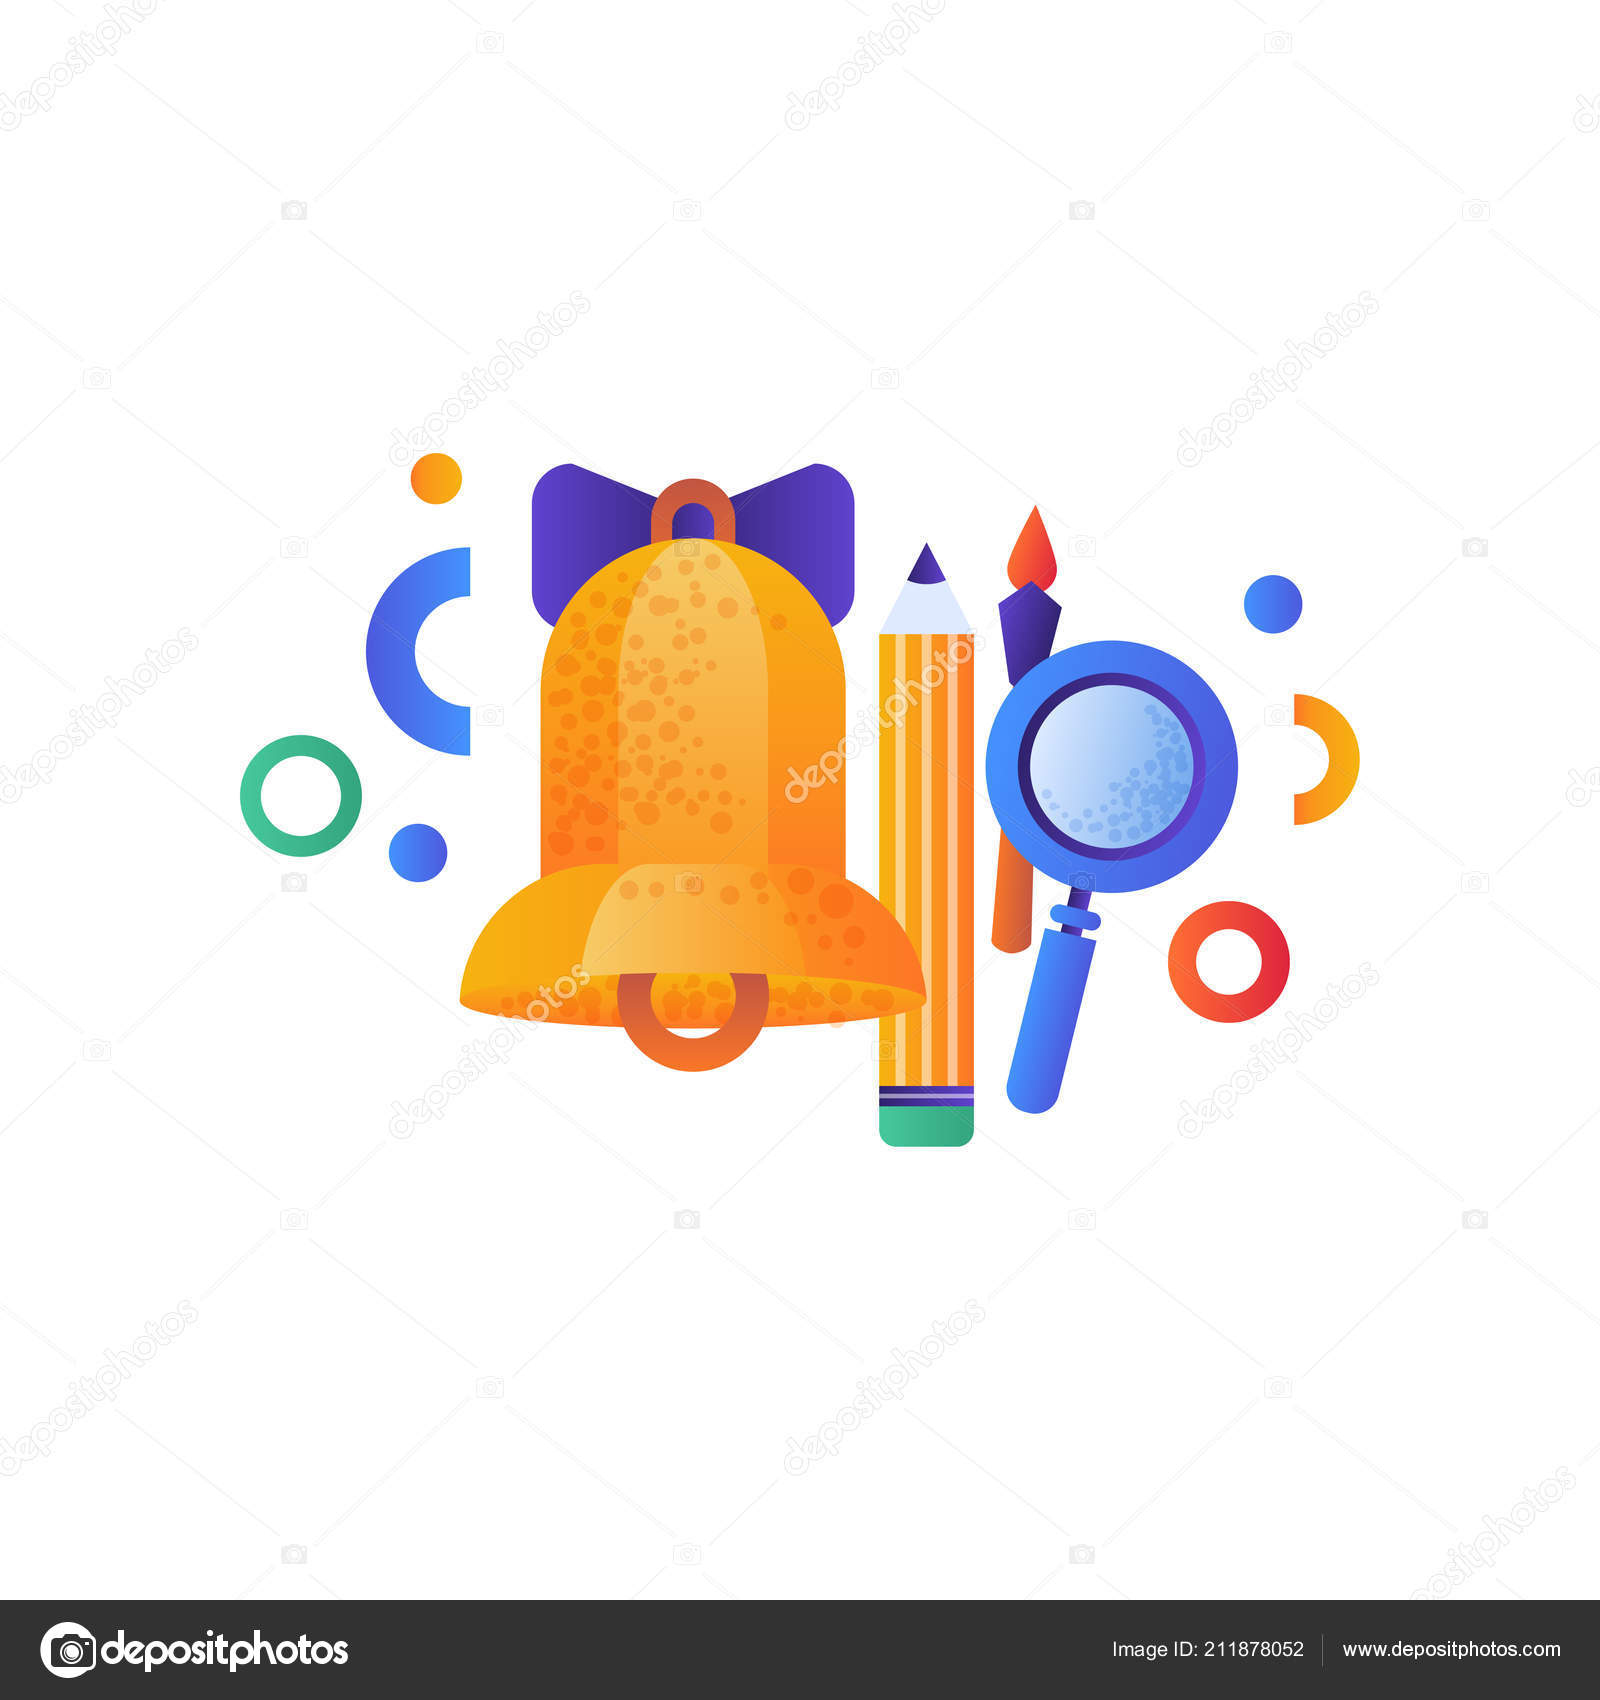 c5ceb8edc School golden bell. pencil, pen and magnifying glass, education concept,  school supplies vector Illustration isolated on a white background.